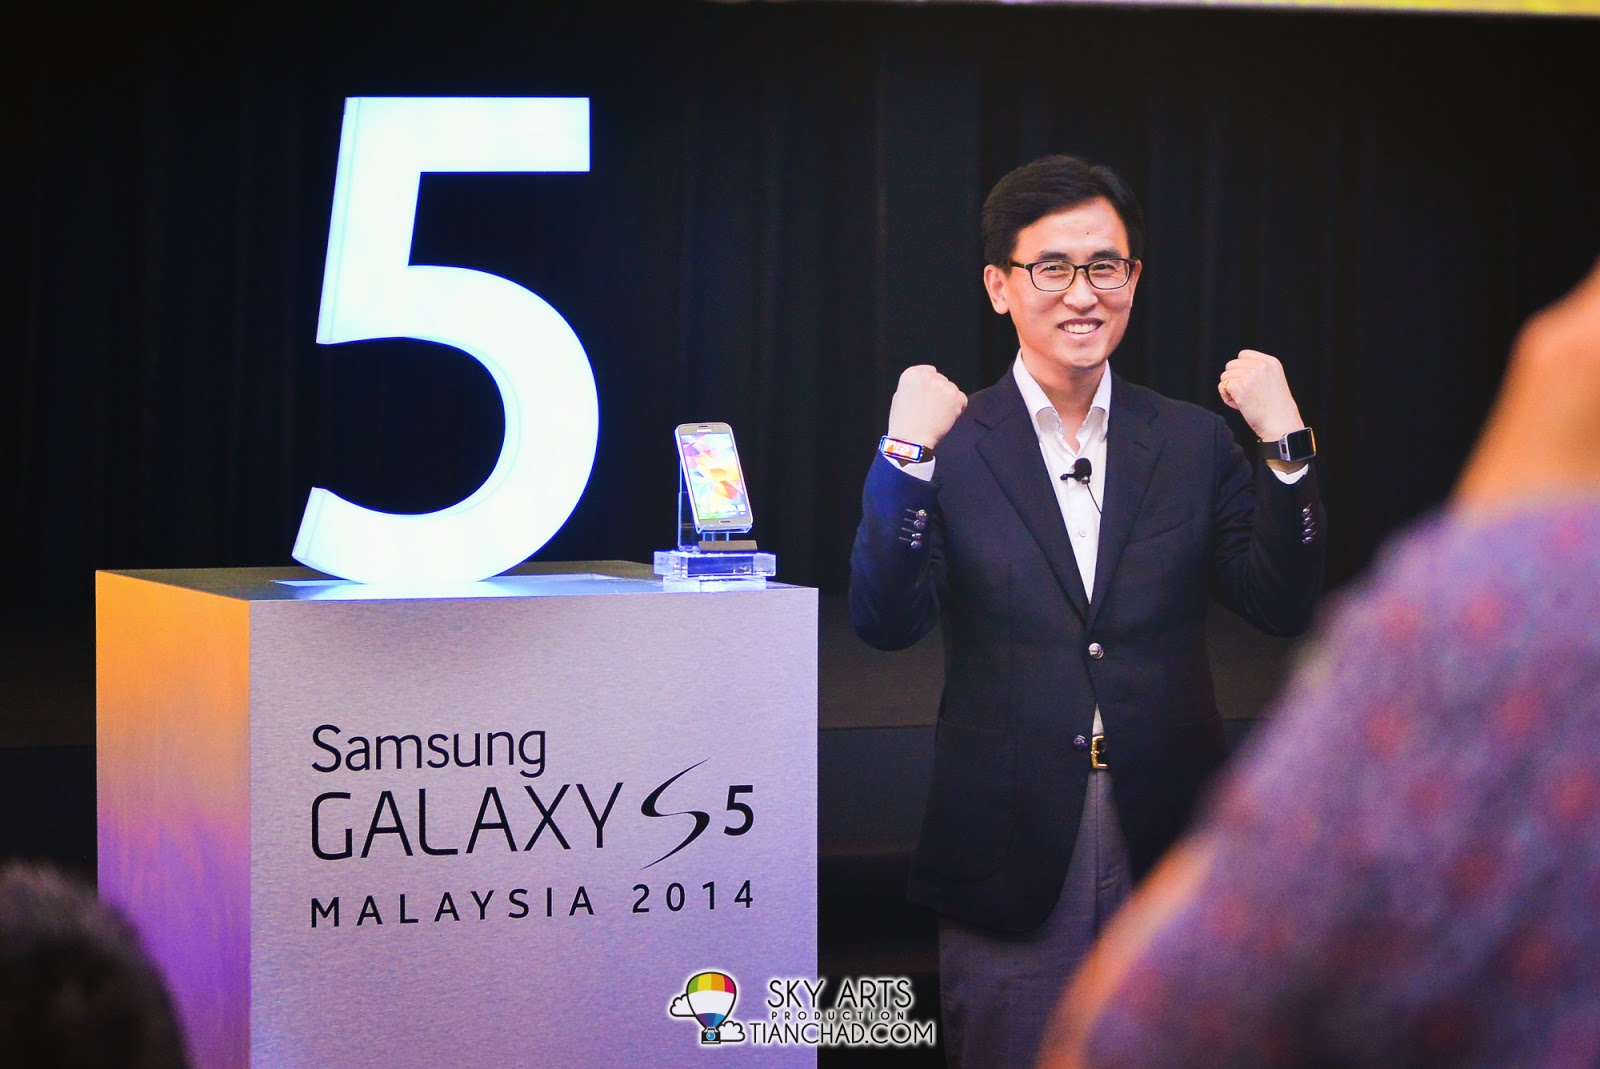 Samsung GALAXY S5, Samsung Gear 2 and Samsung Fit Launch in Malaysia 2014